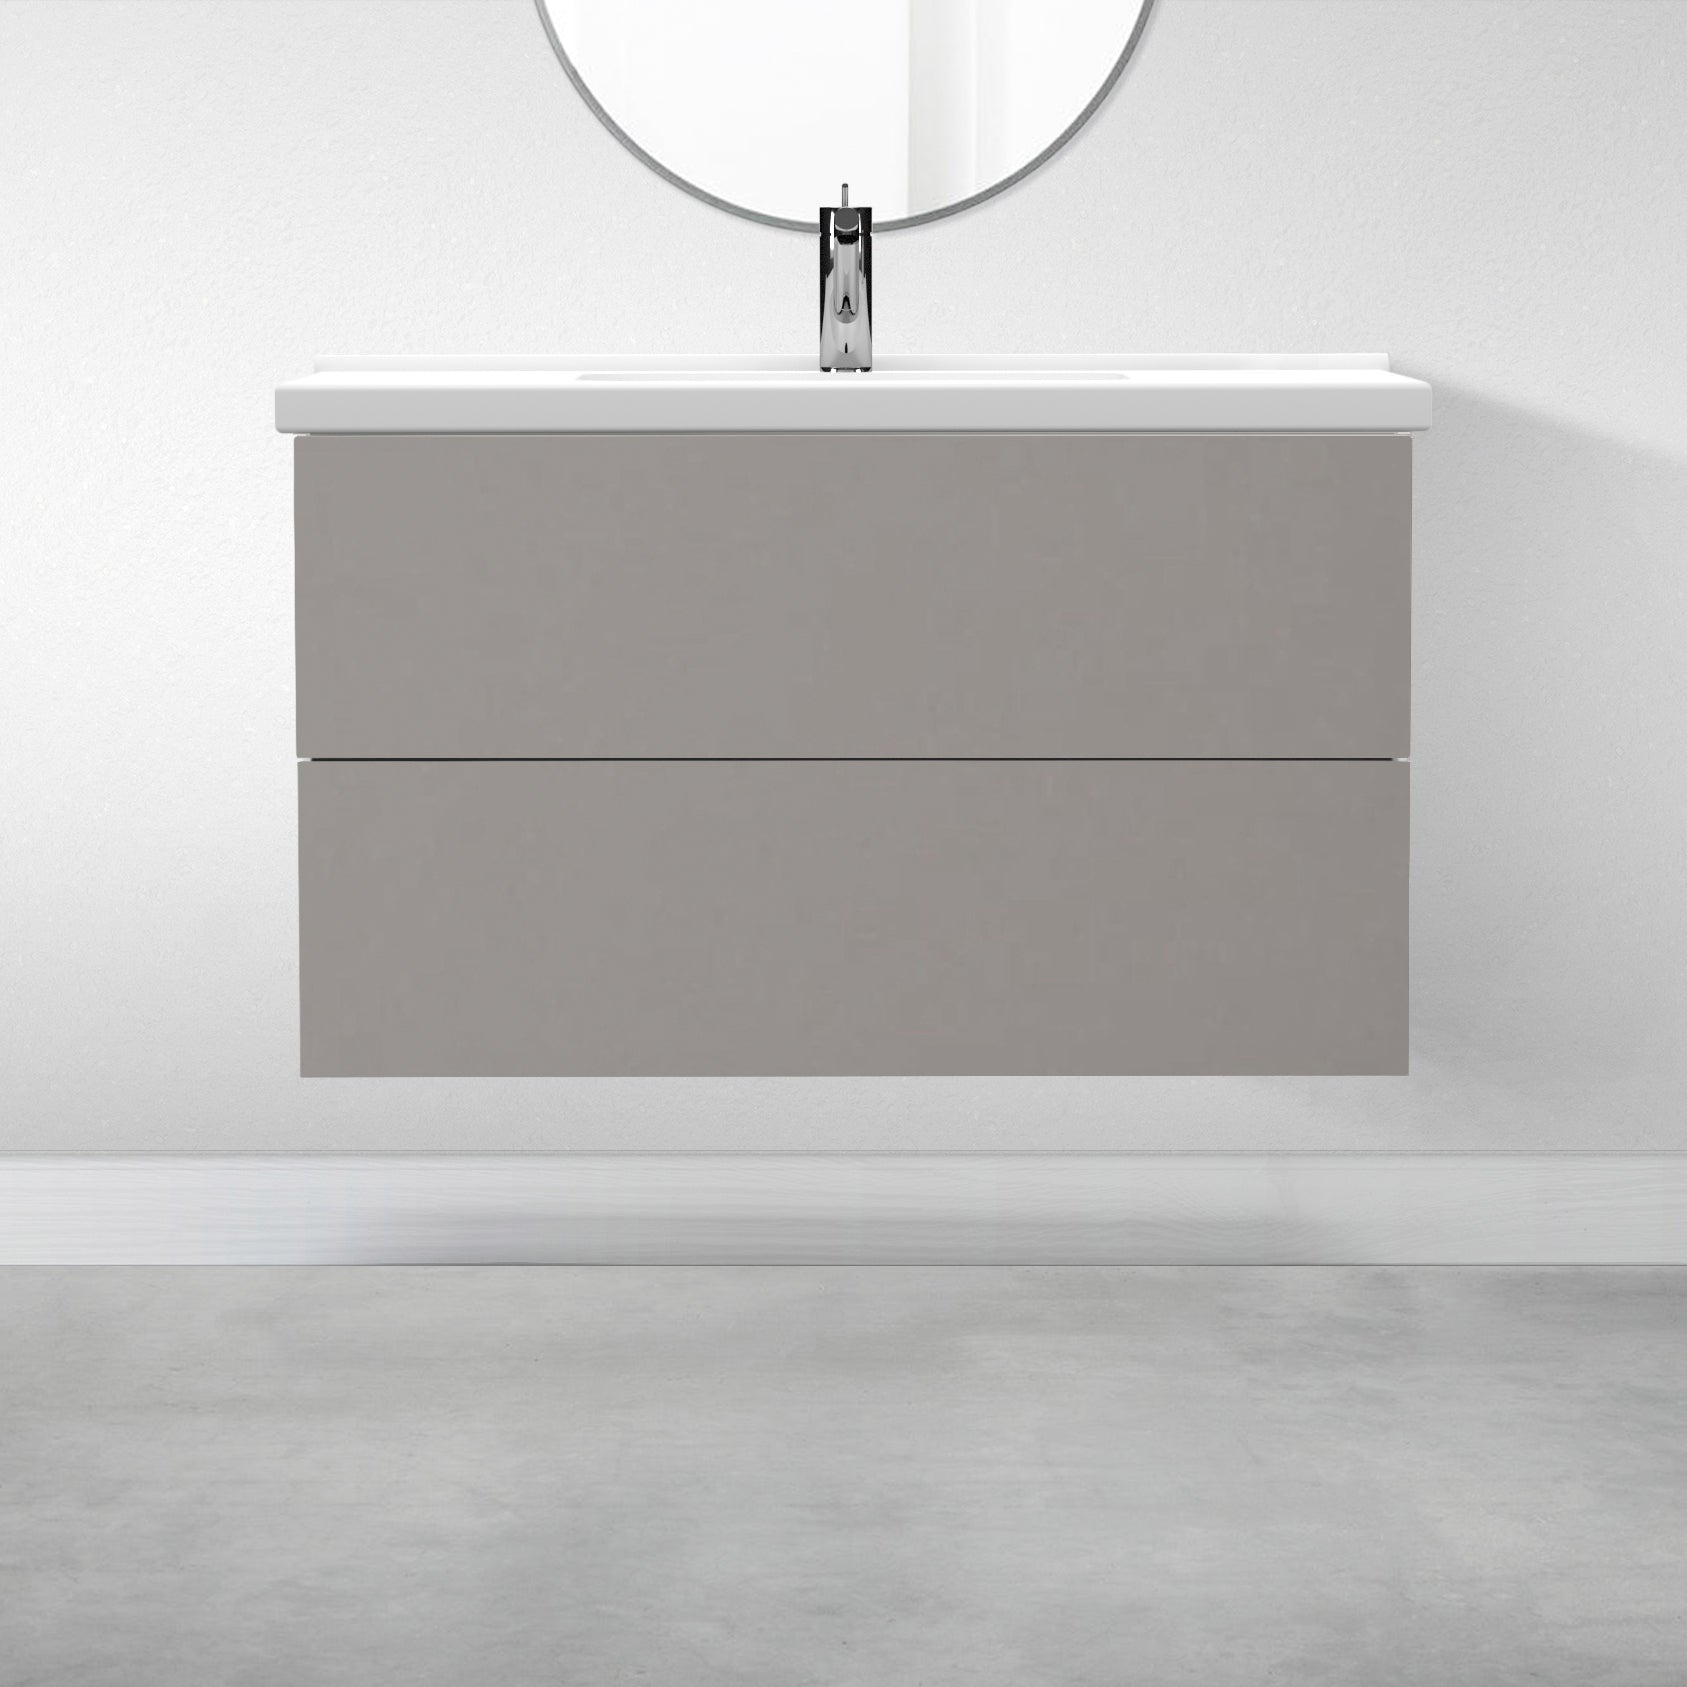 "2 Drawers - 39 3/8"" for Godmorgon Supermatte Slab / Light Grey"